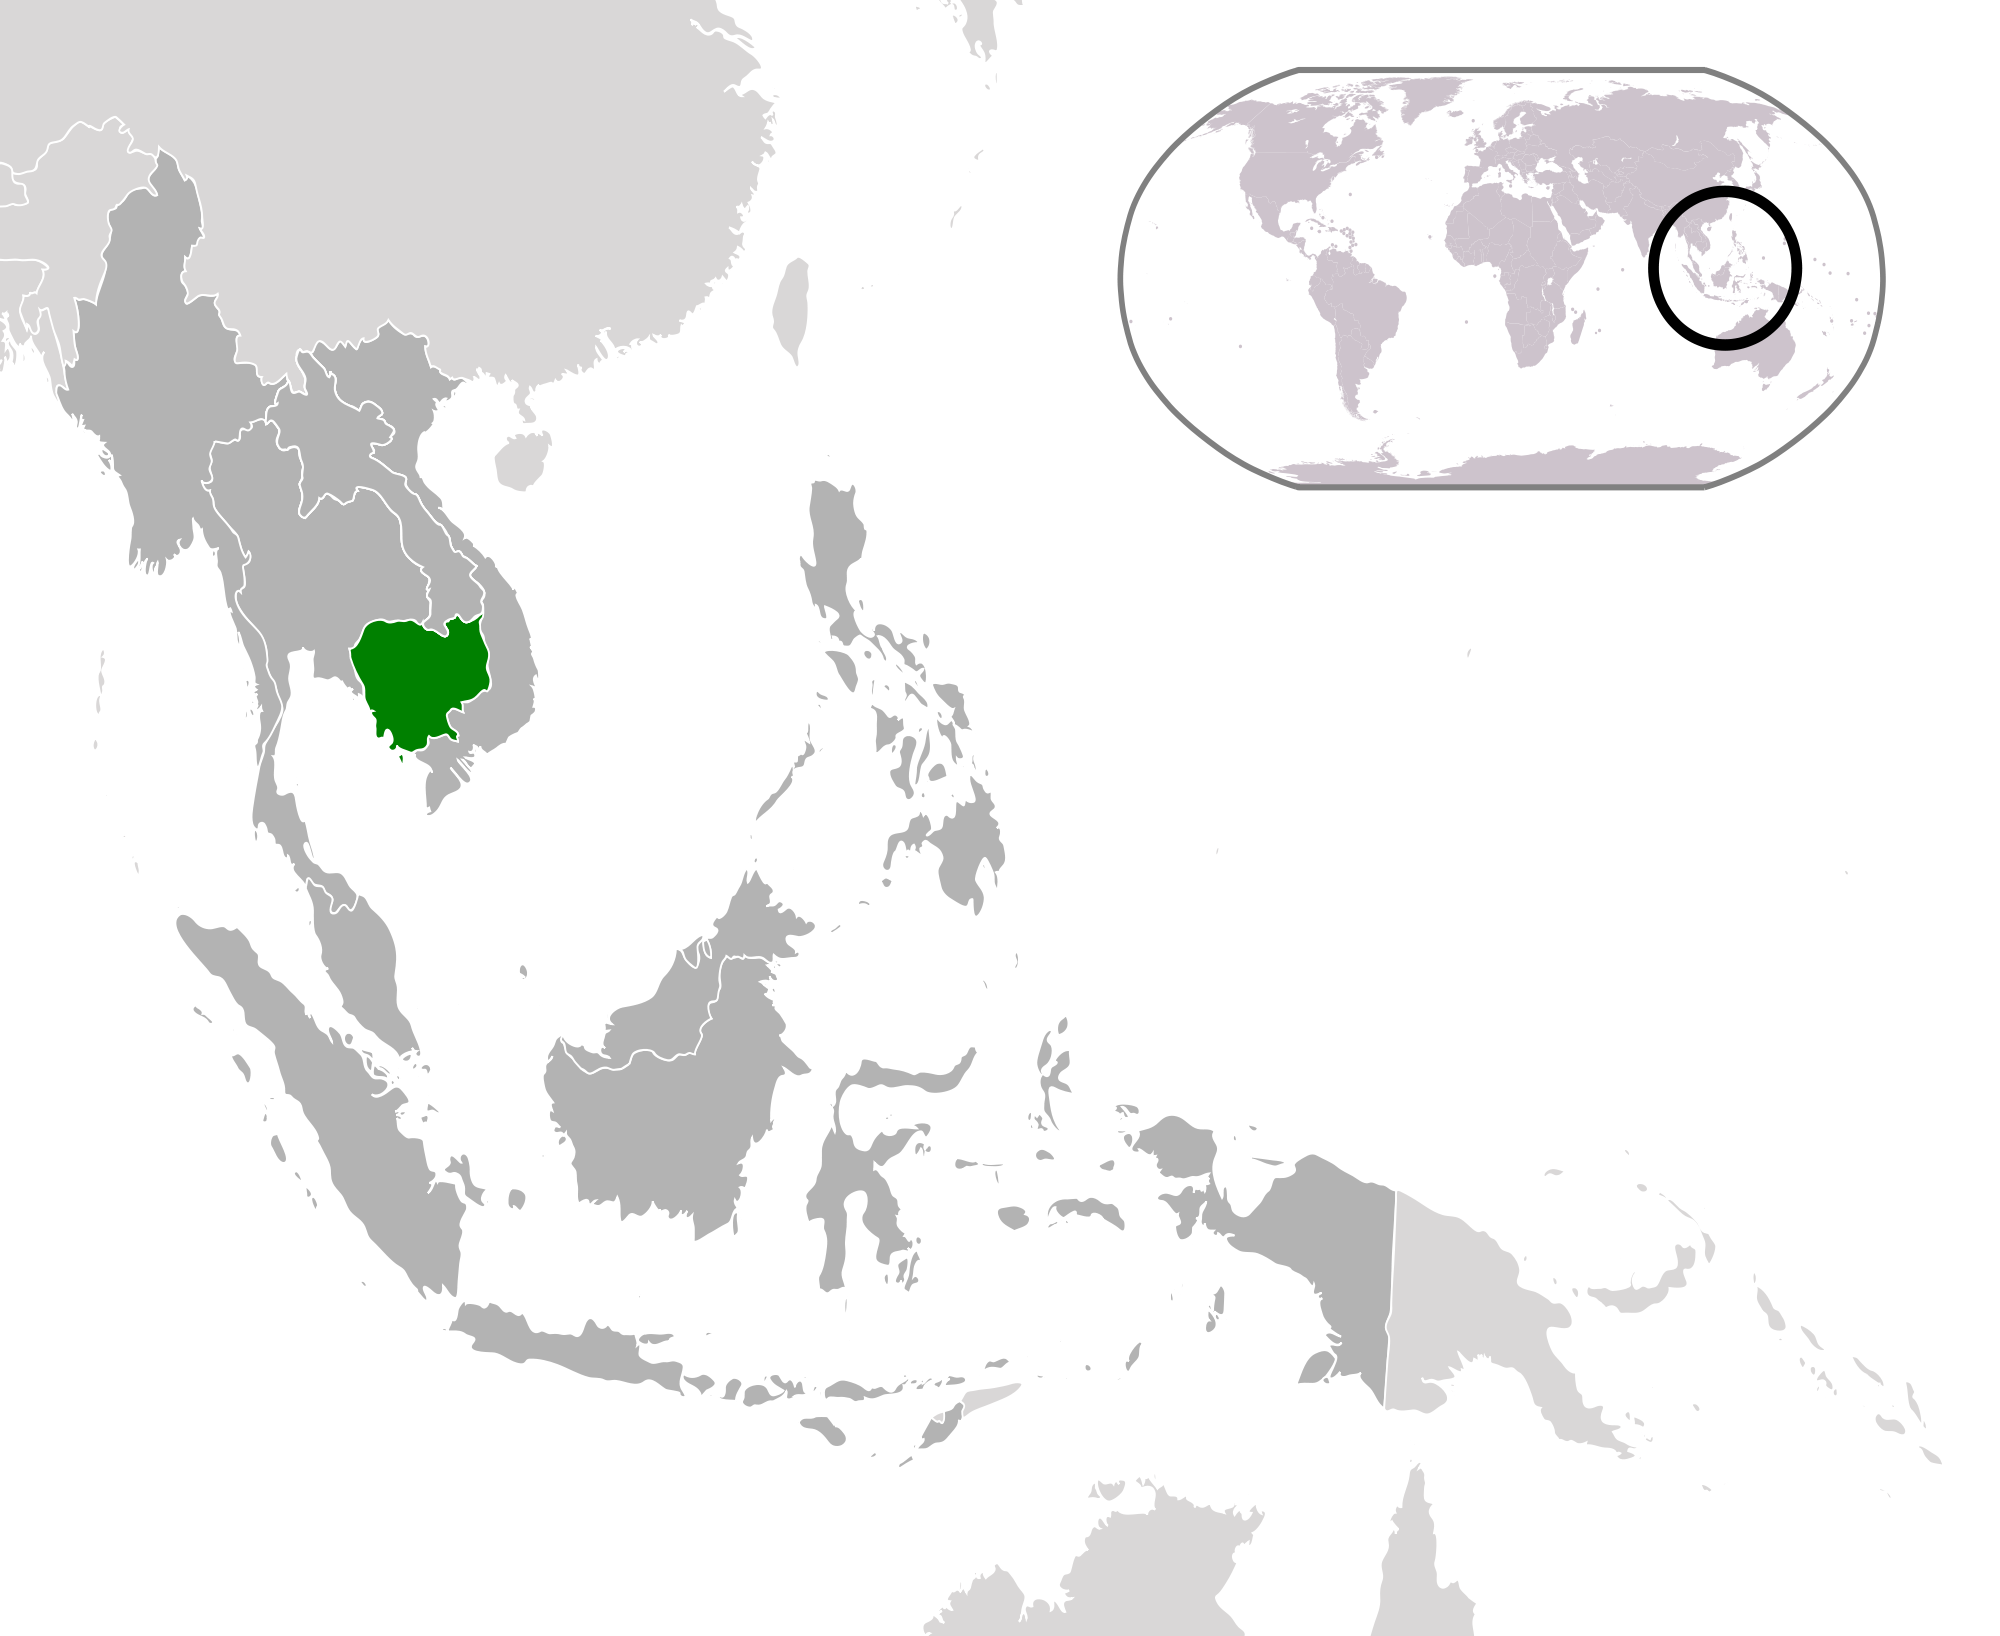 Location of the Cambodia in the World Map